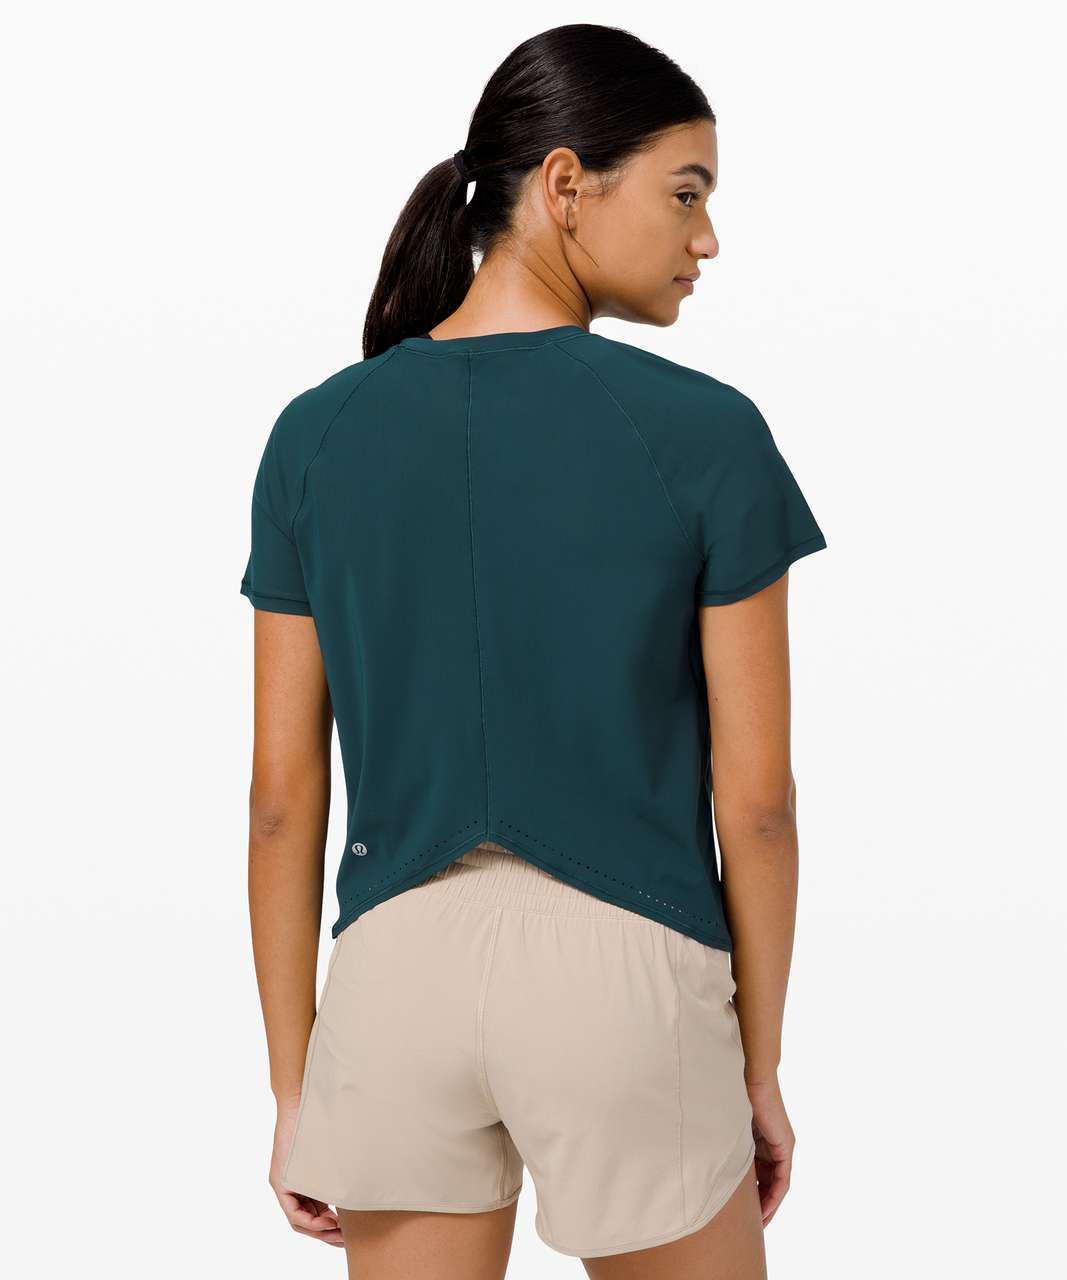 Lululemon Rise and Run Short Sleeve - Submarine